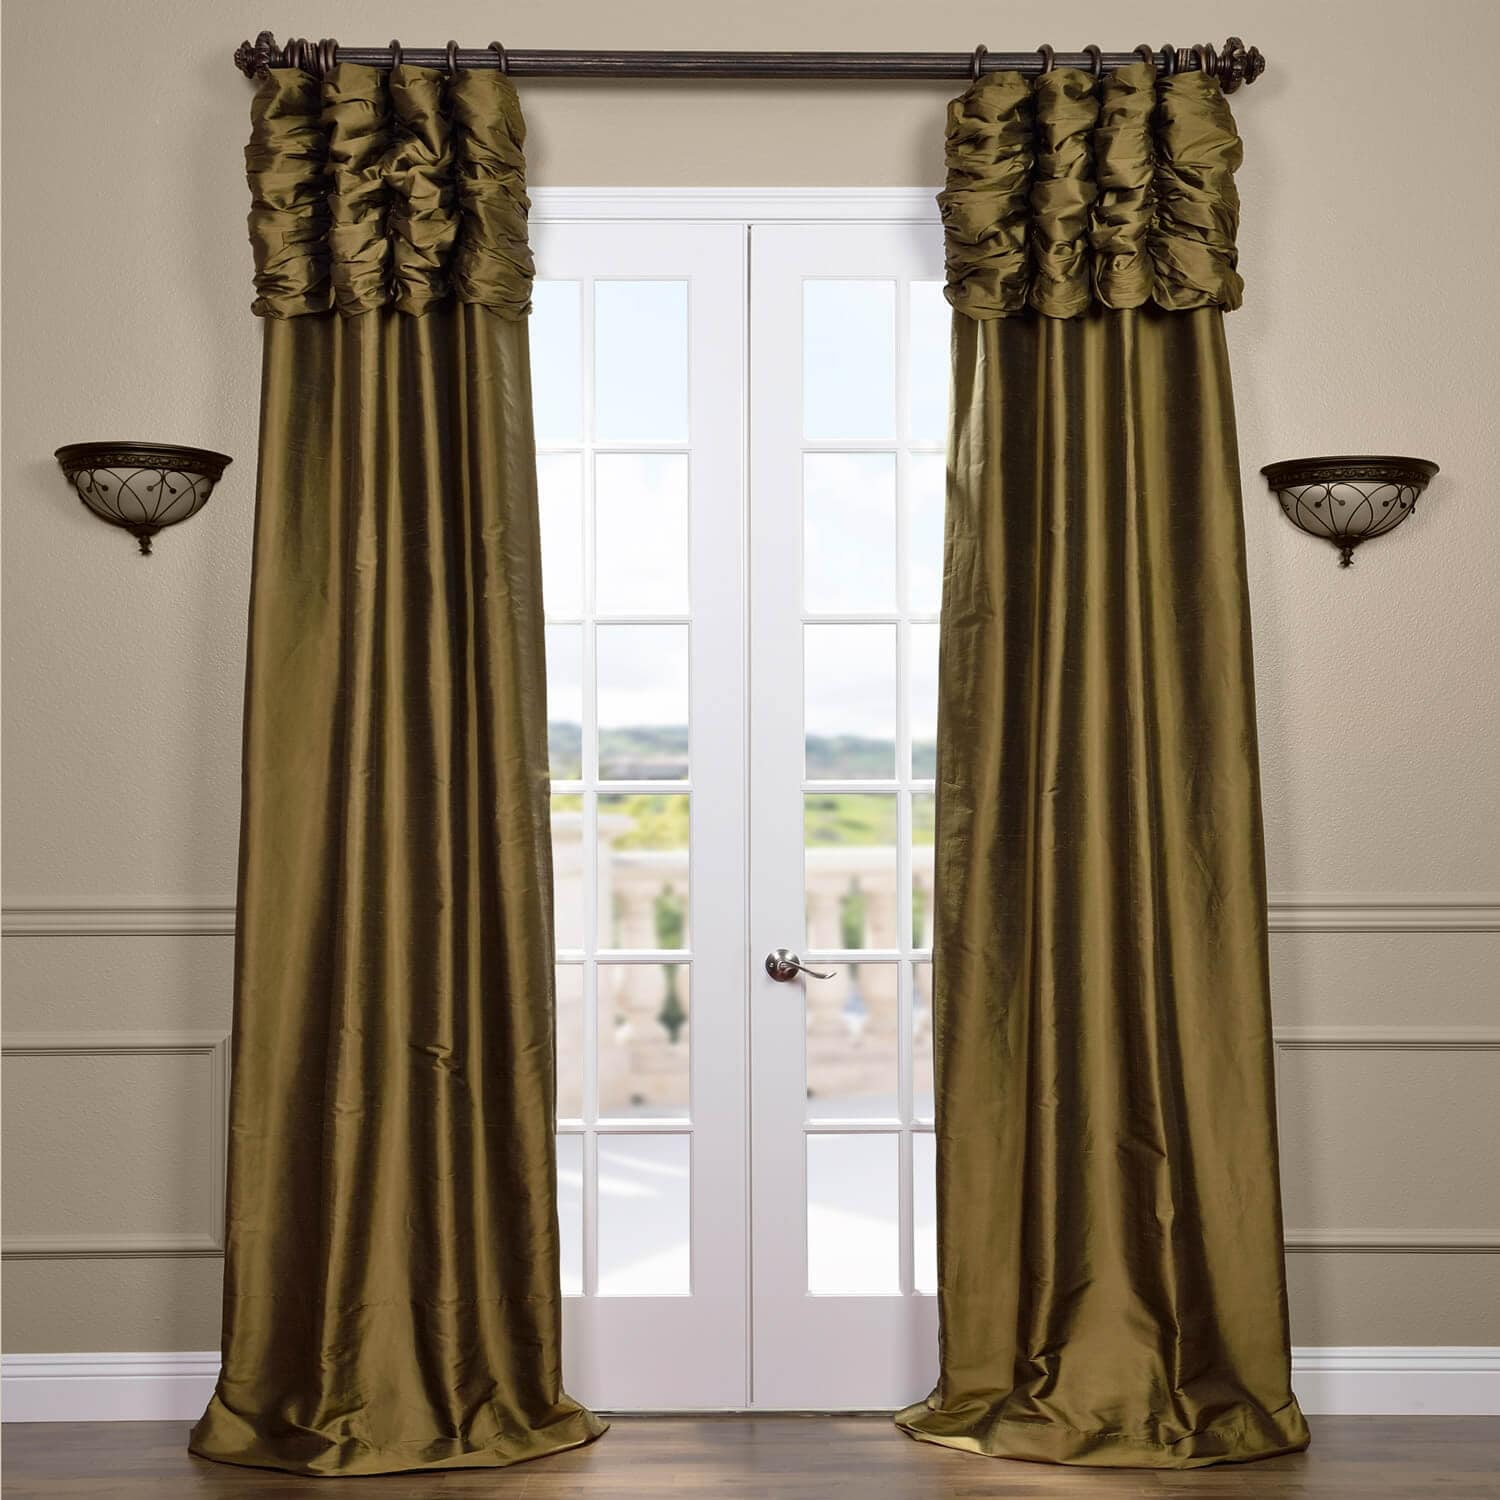 x dkny bed decor highline stripe curtains inch hei home kitchen valances beach cotton wid themed bath qlt window store pair valance panel category treatments curtain beyond